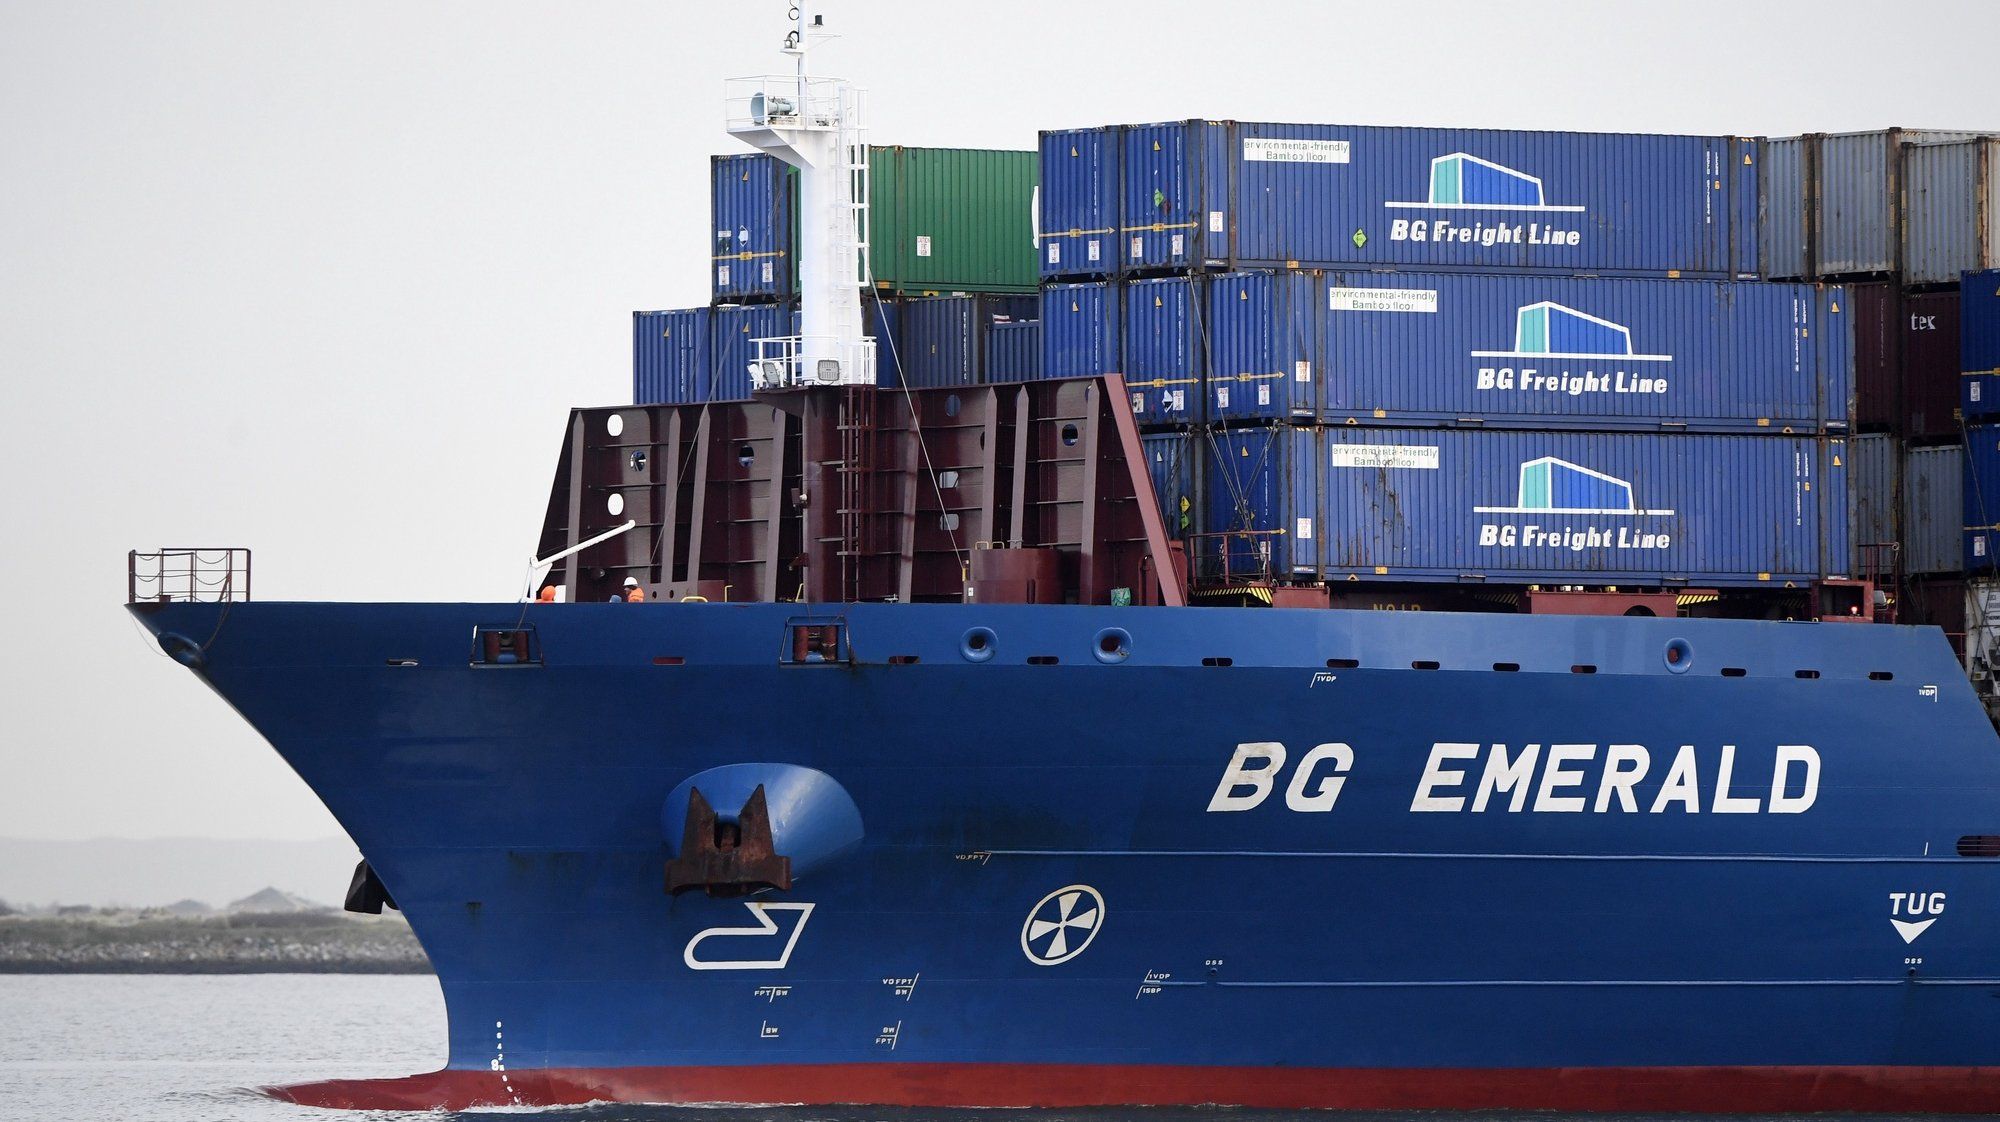 epa08878785 A container ship enters Dublin Port in Dublin, Ireland, 12 December 2020. Brexit negotiations continue in Brussles before the 13 December deadline before Britain leaves the EU on 01 January 2021.  EPA/AIDAN CRAWLEY